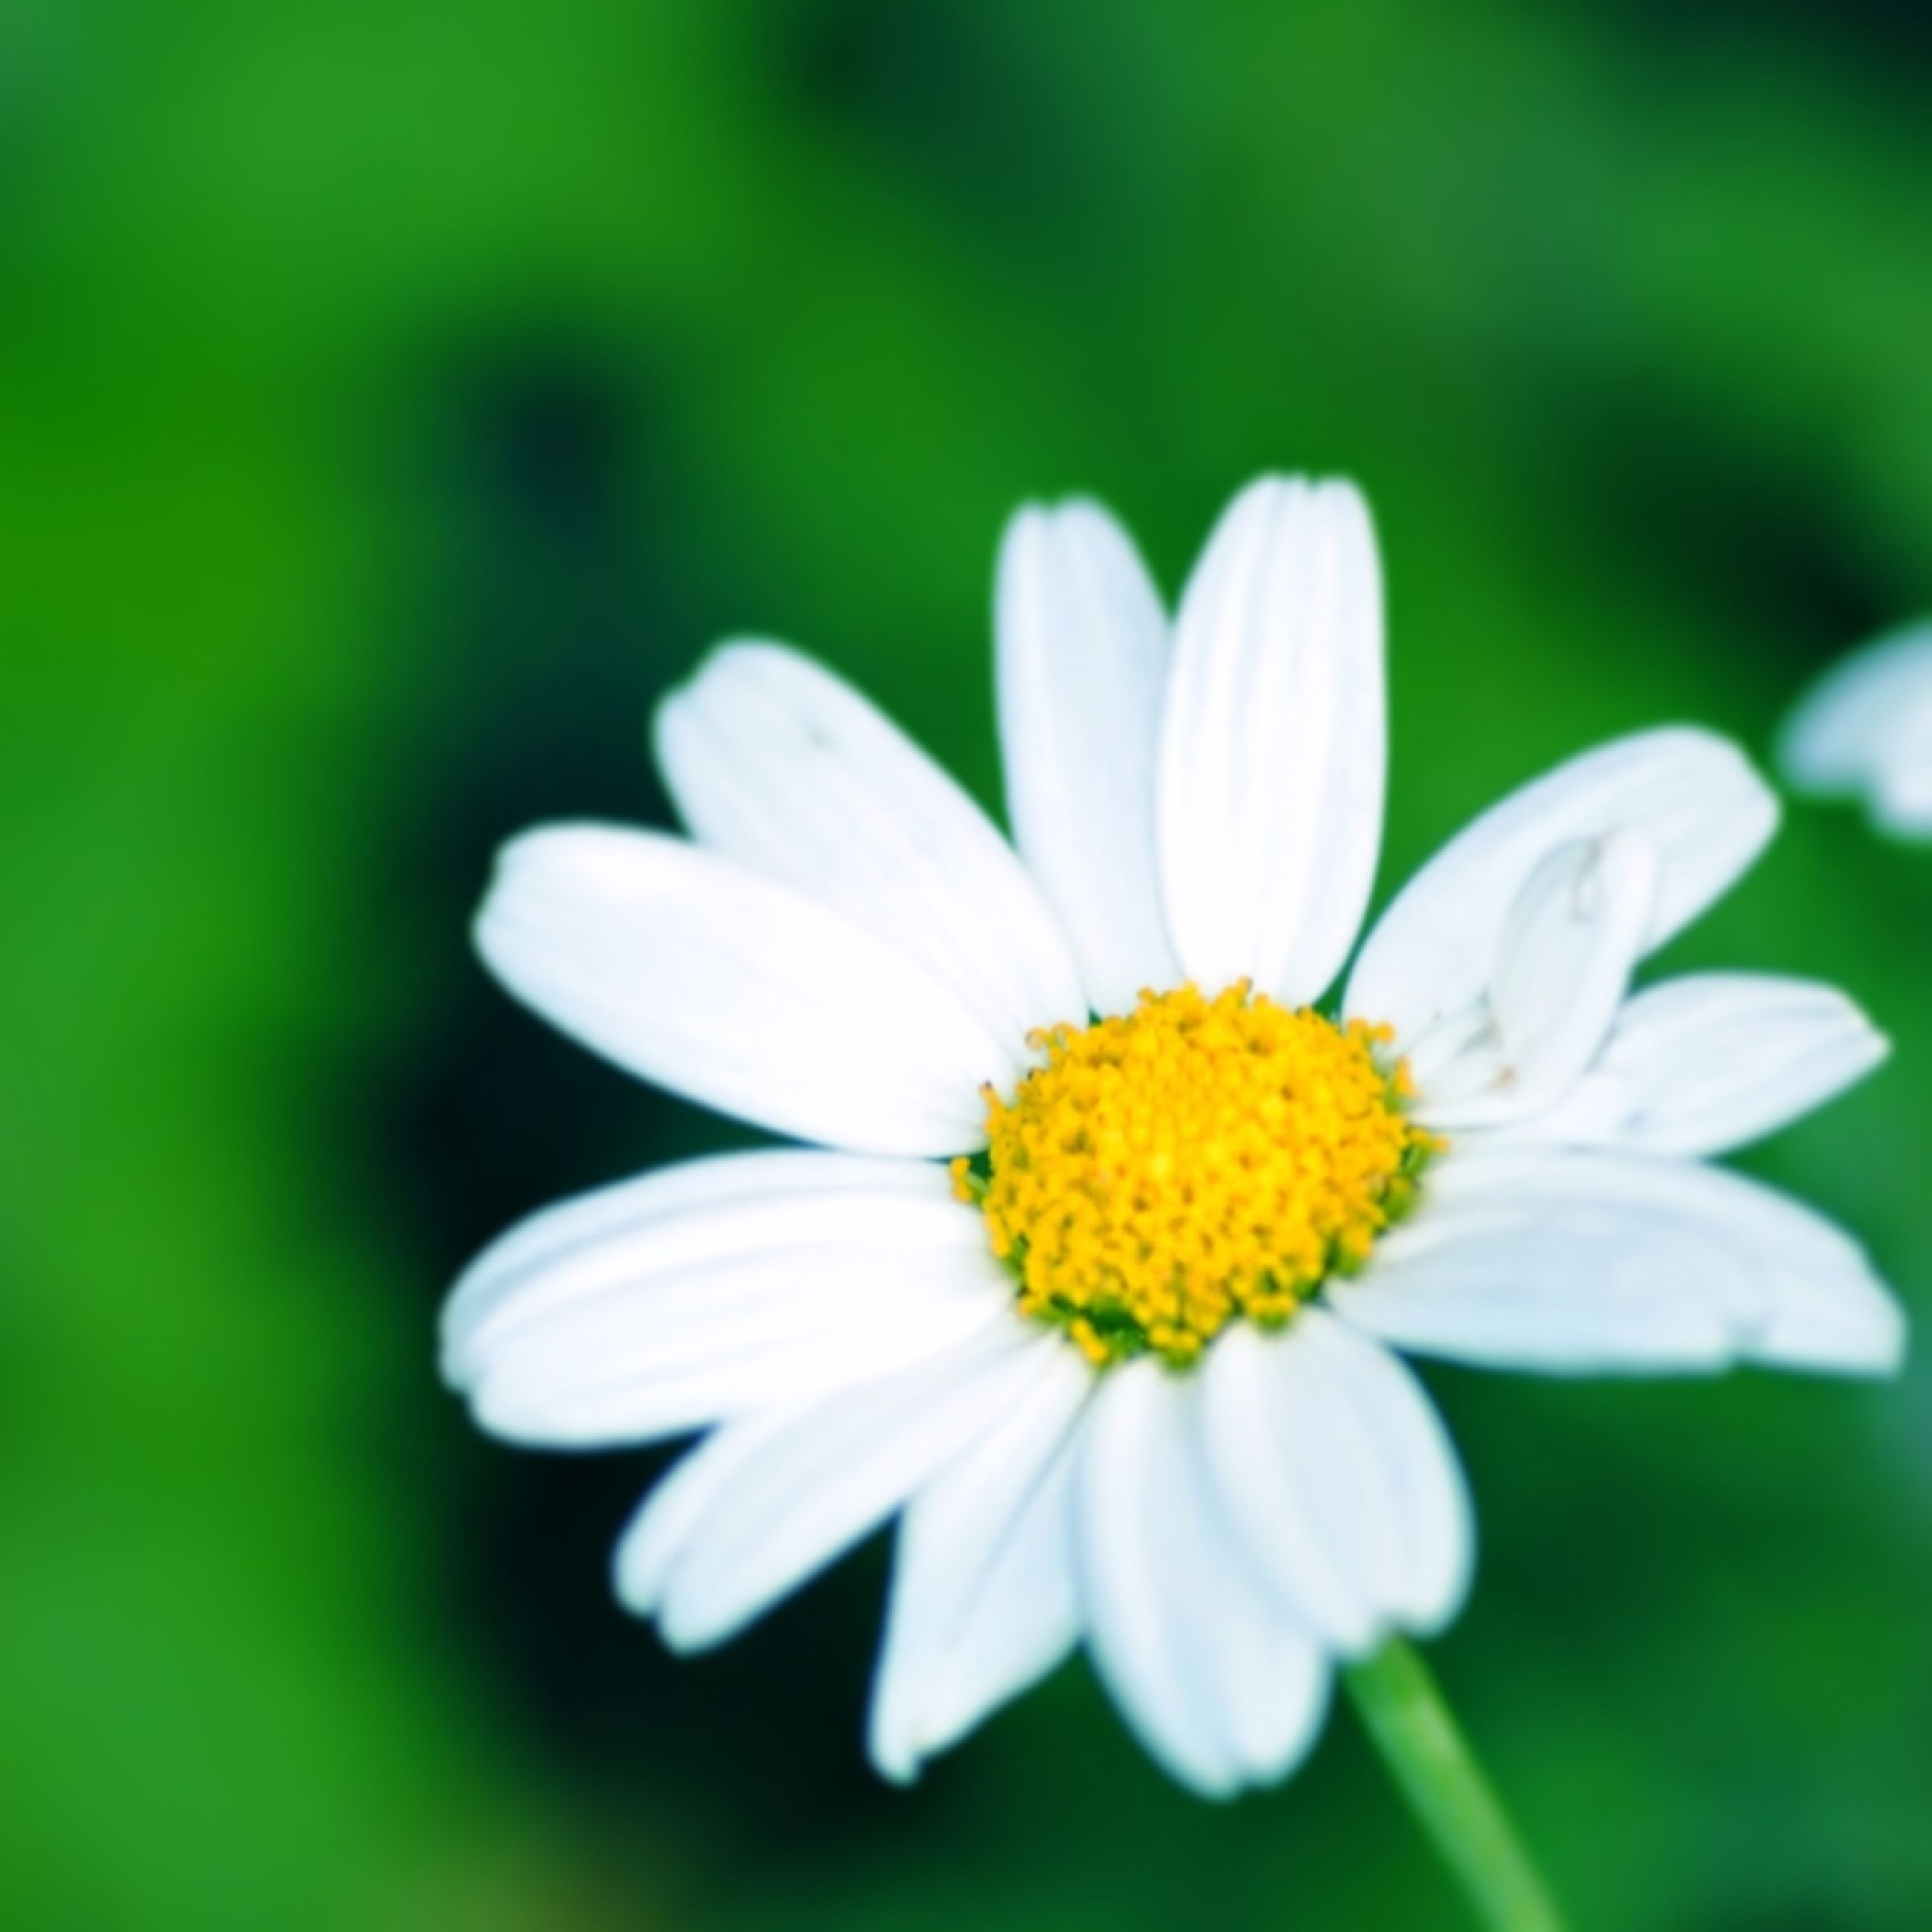 flower, petal, freshness, flower head, fragility, white color, yellow, beauty in nature, close-up, growth, daisy, focus on foreground, pollen, nature, blooming, single flower, selective focus, white, plant, outdoors